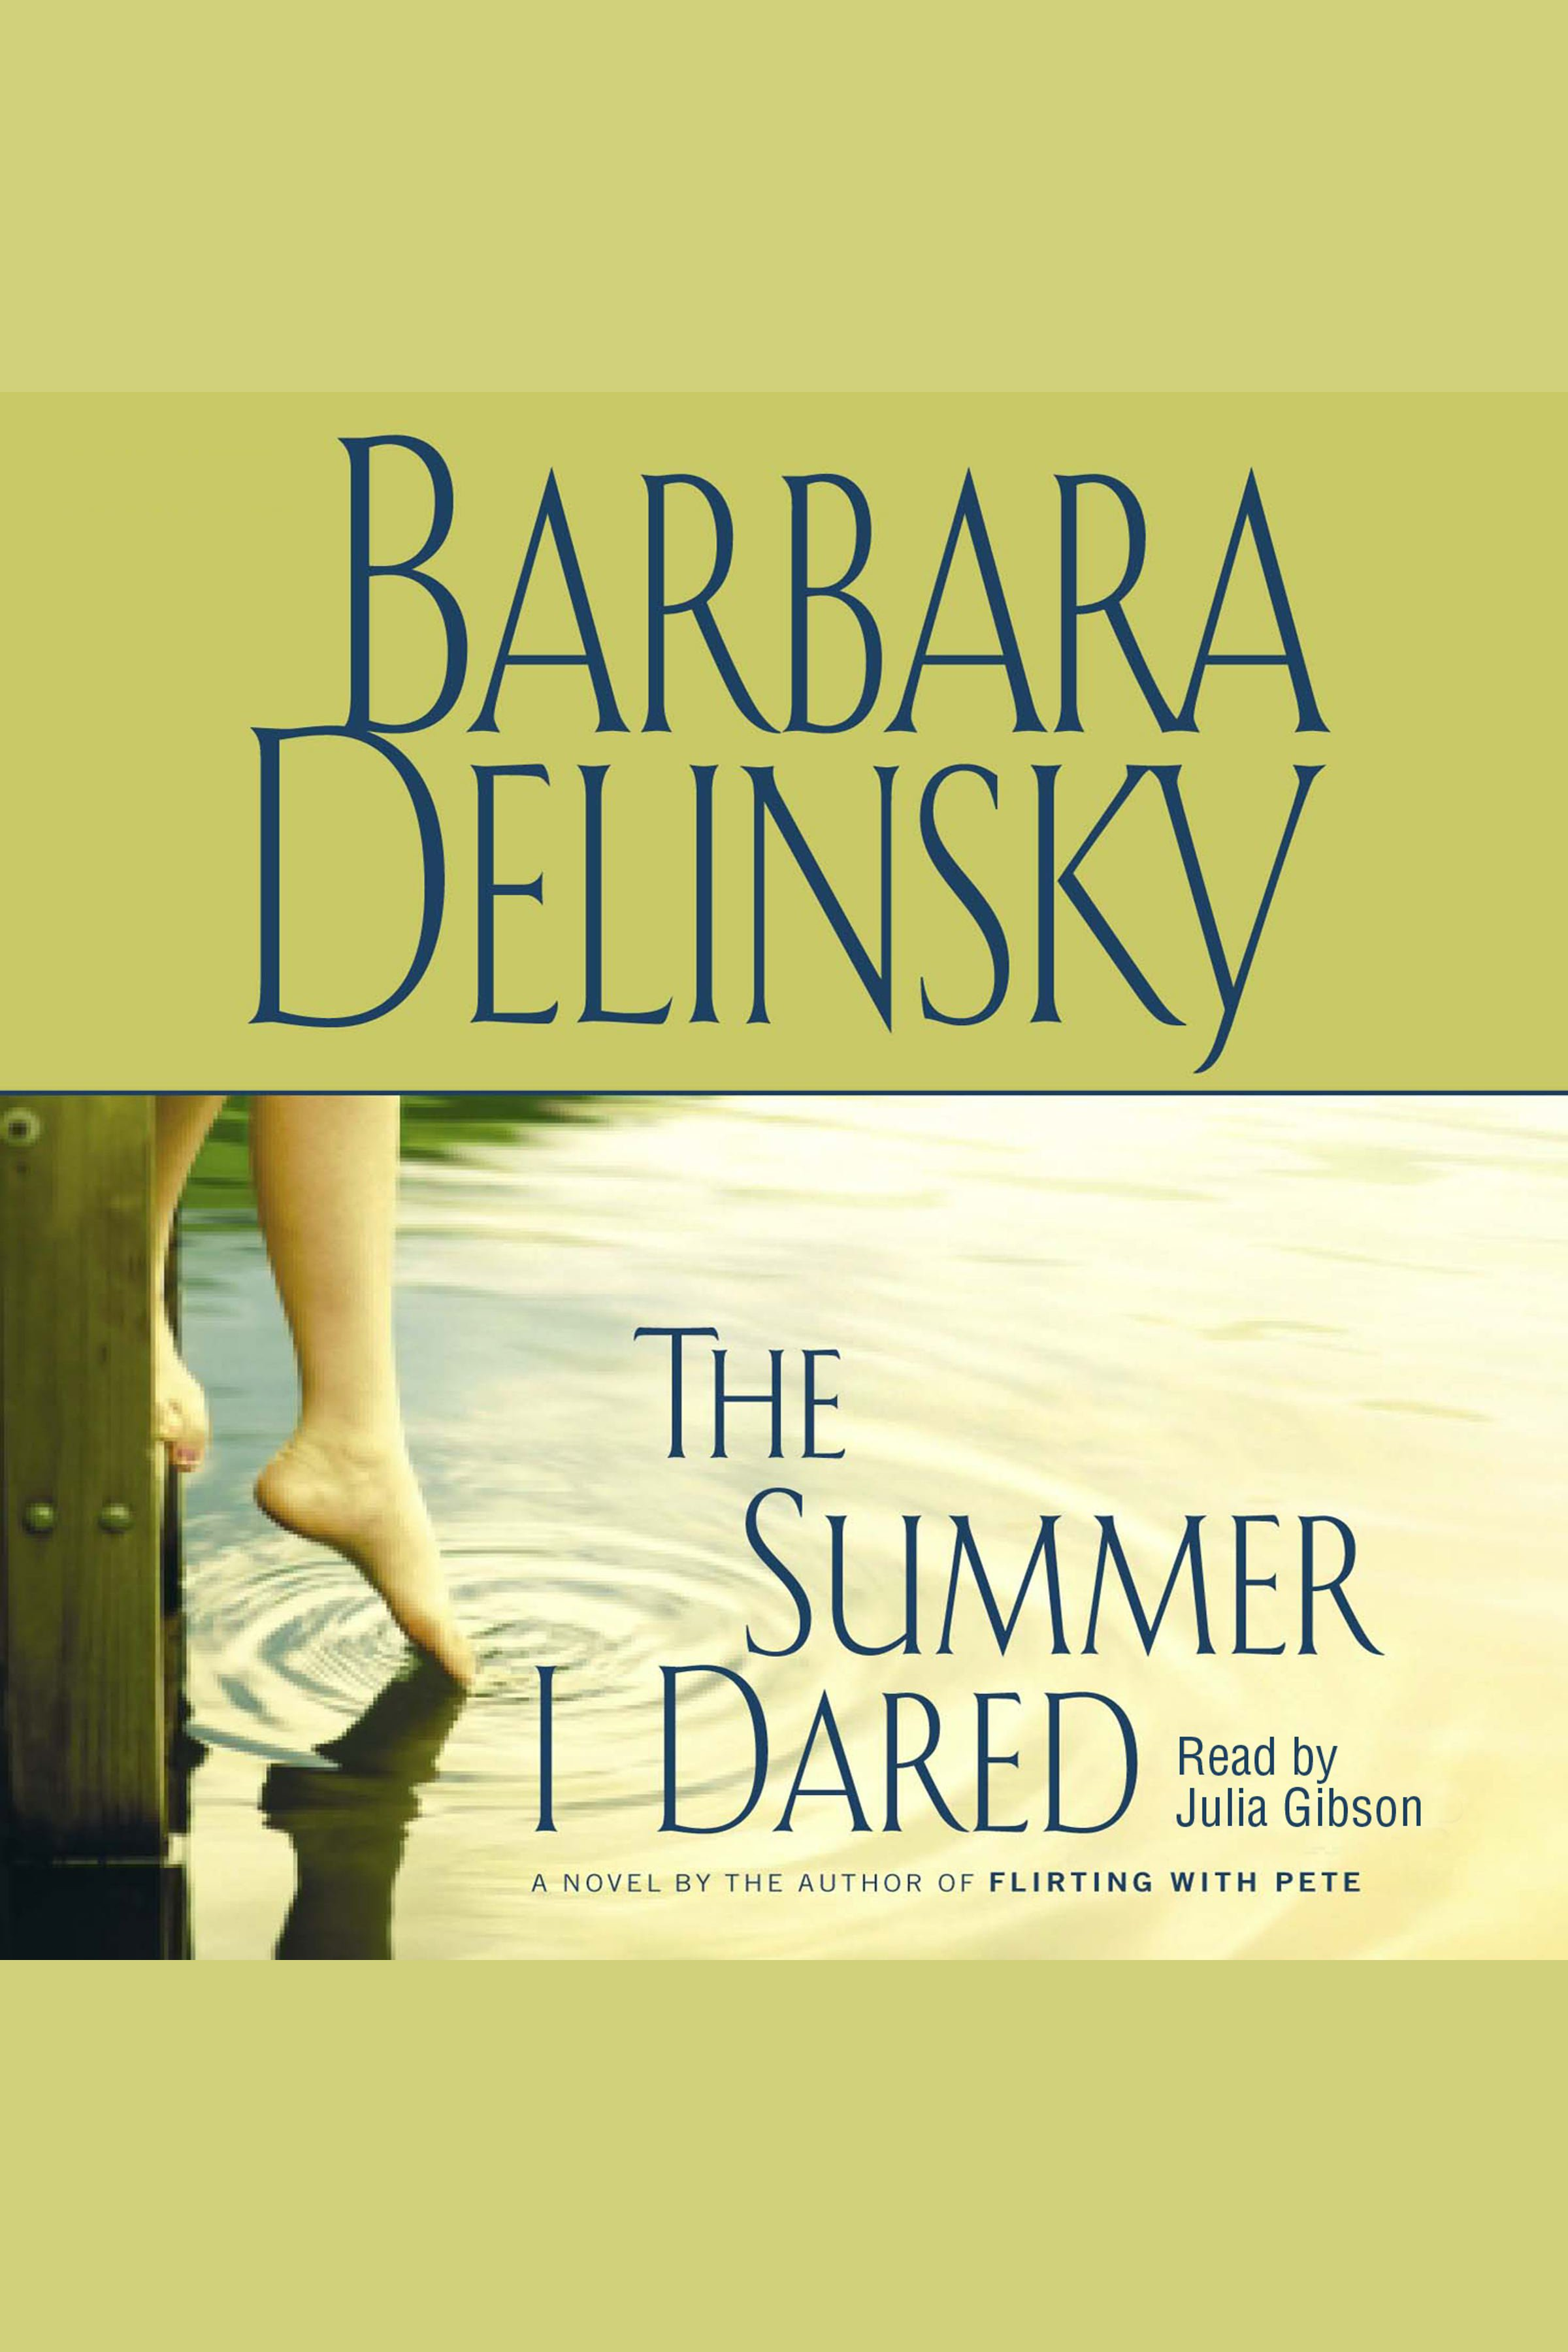 Summer I Dared cover image